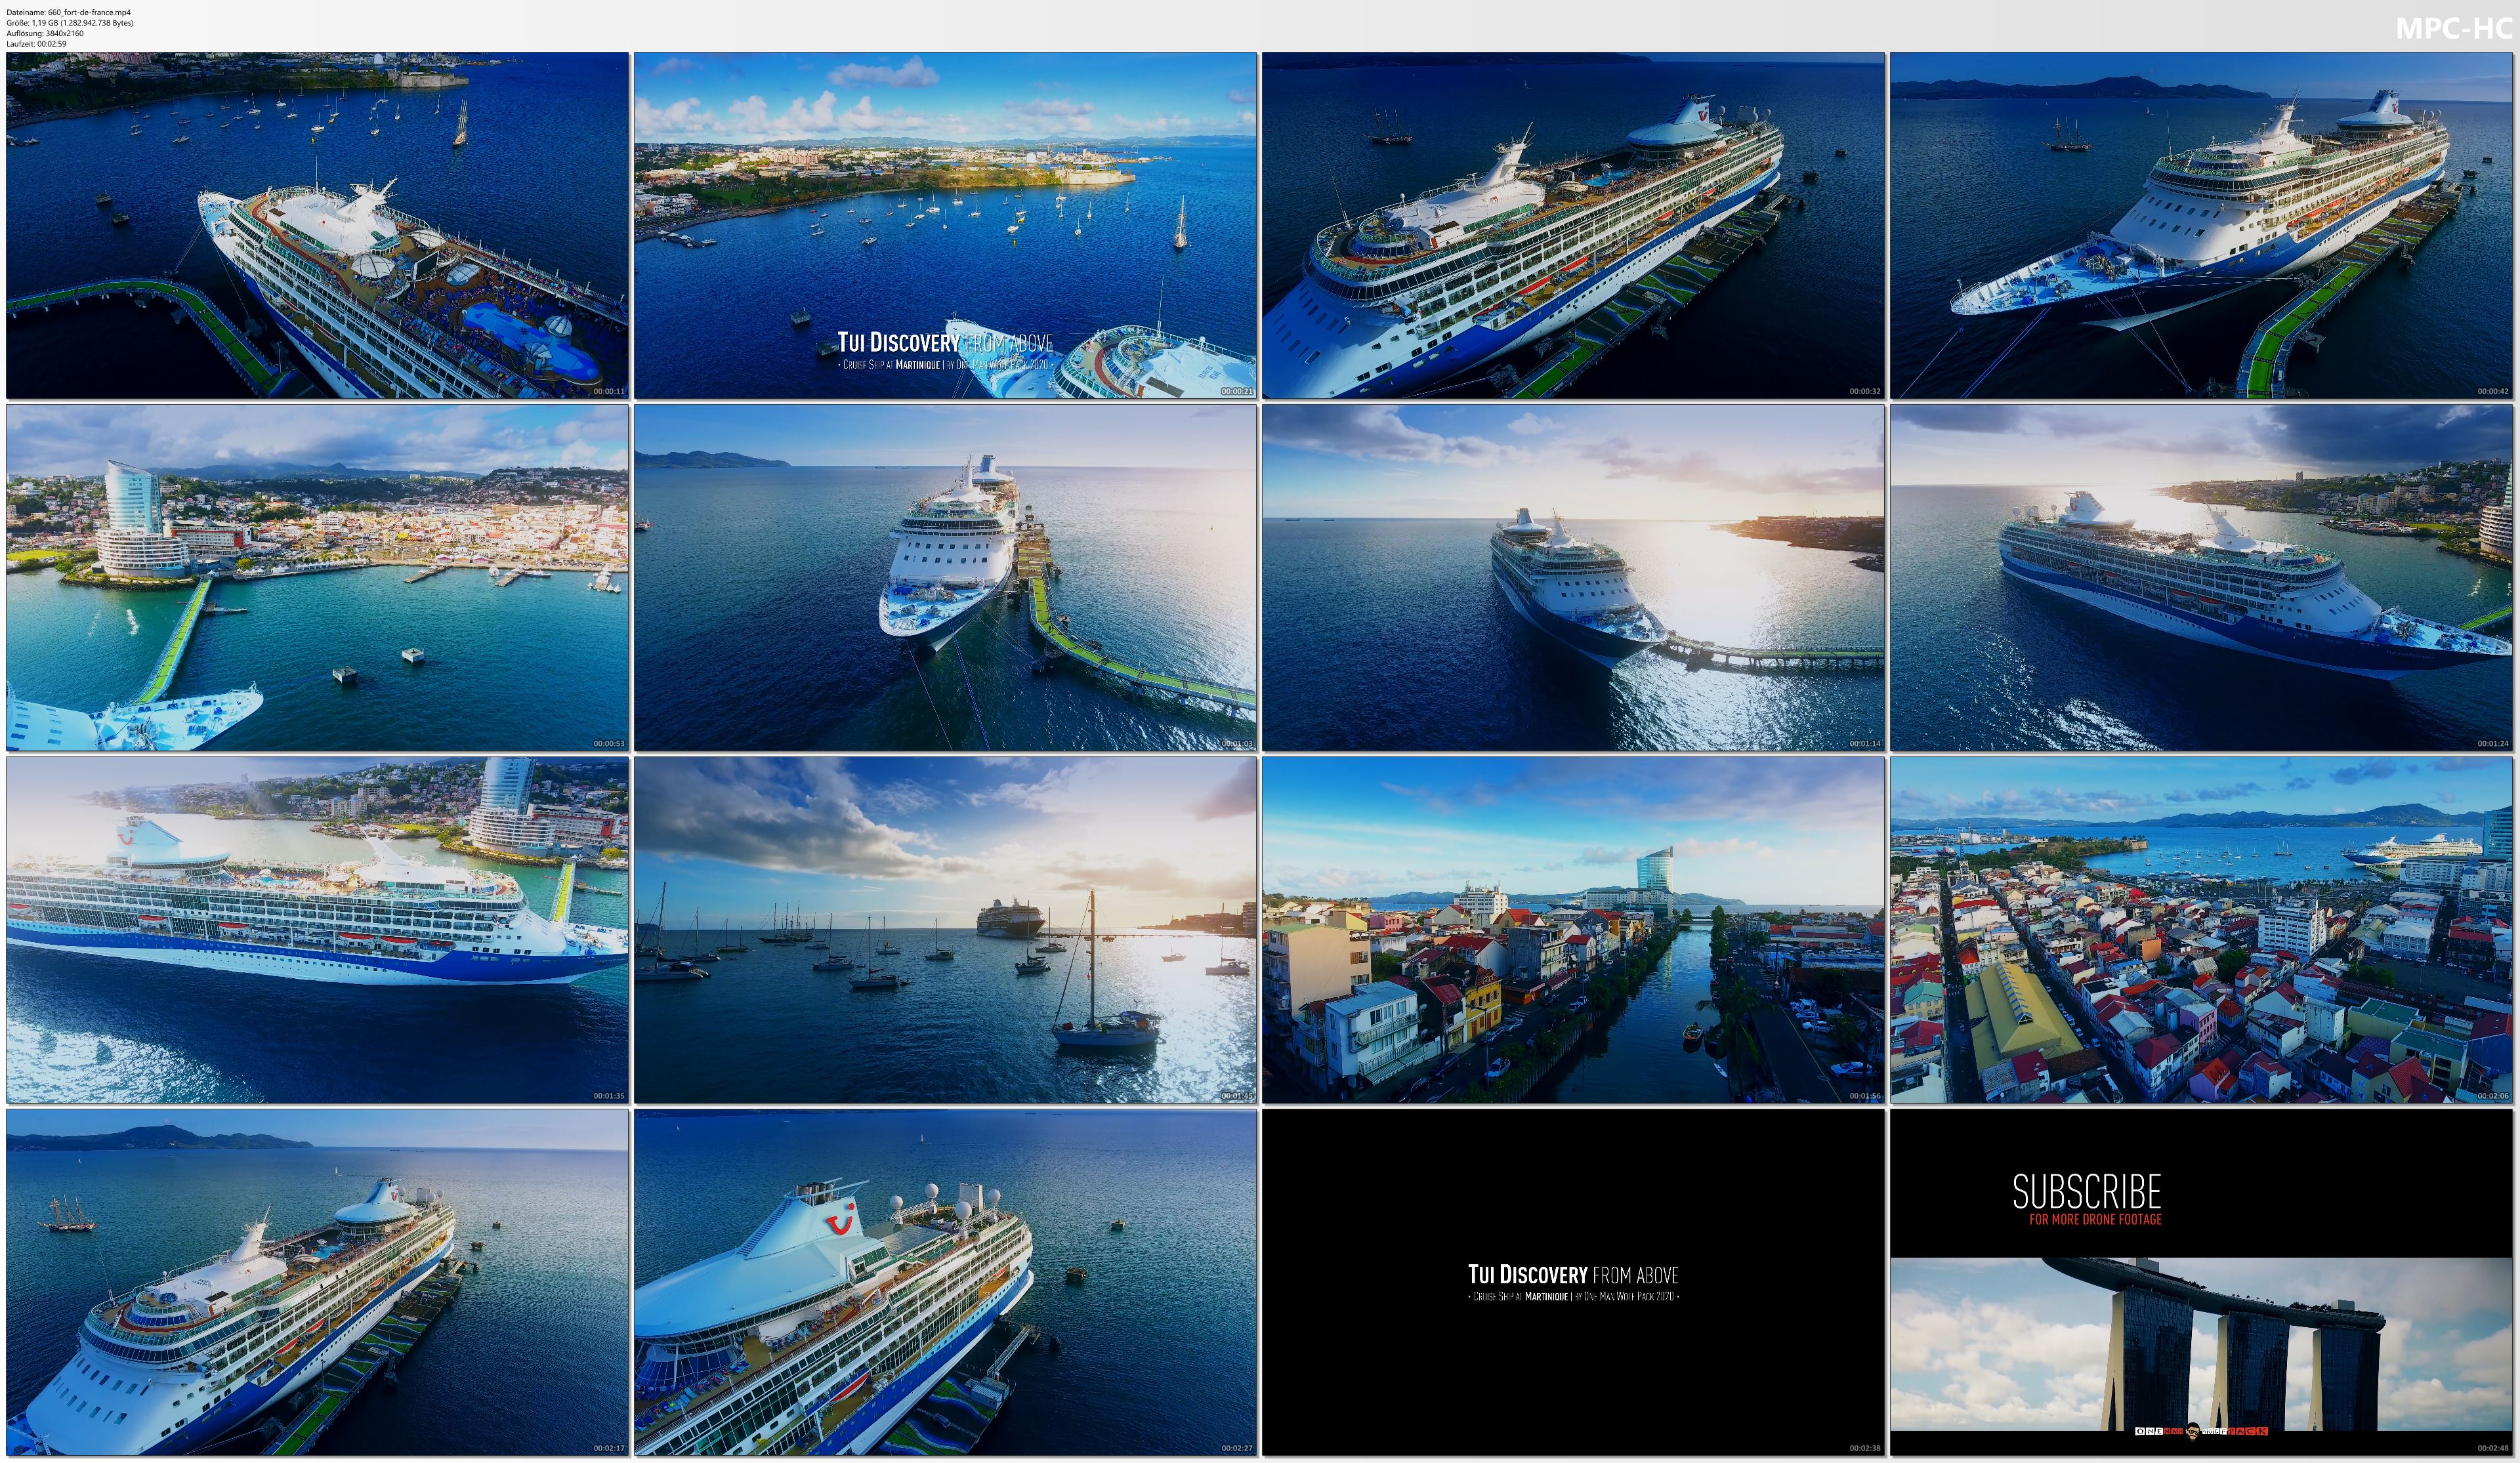 Drone Pictures from Video 【4K】CRUISE SHIPS from Above | Marella / TUI Discovery 2020 | Martinique | Cinematic Wolf Aerial™